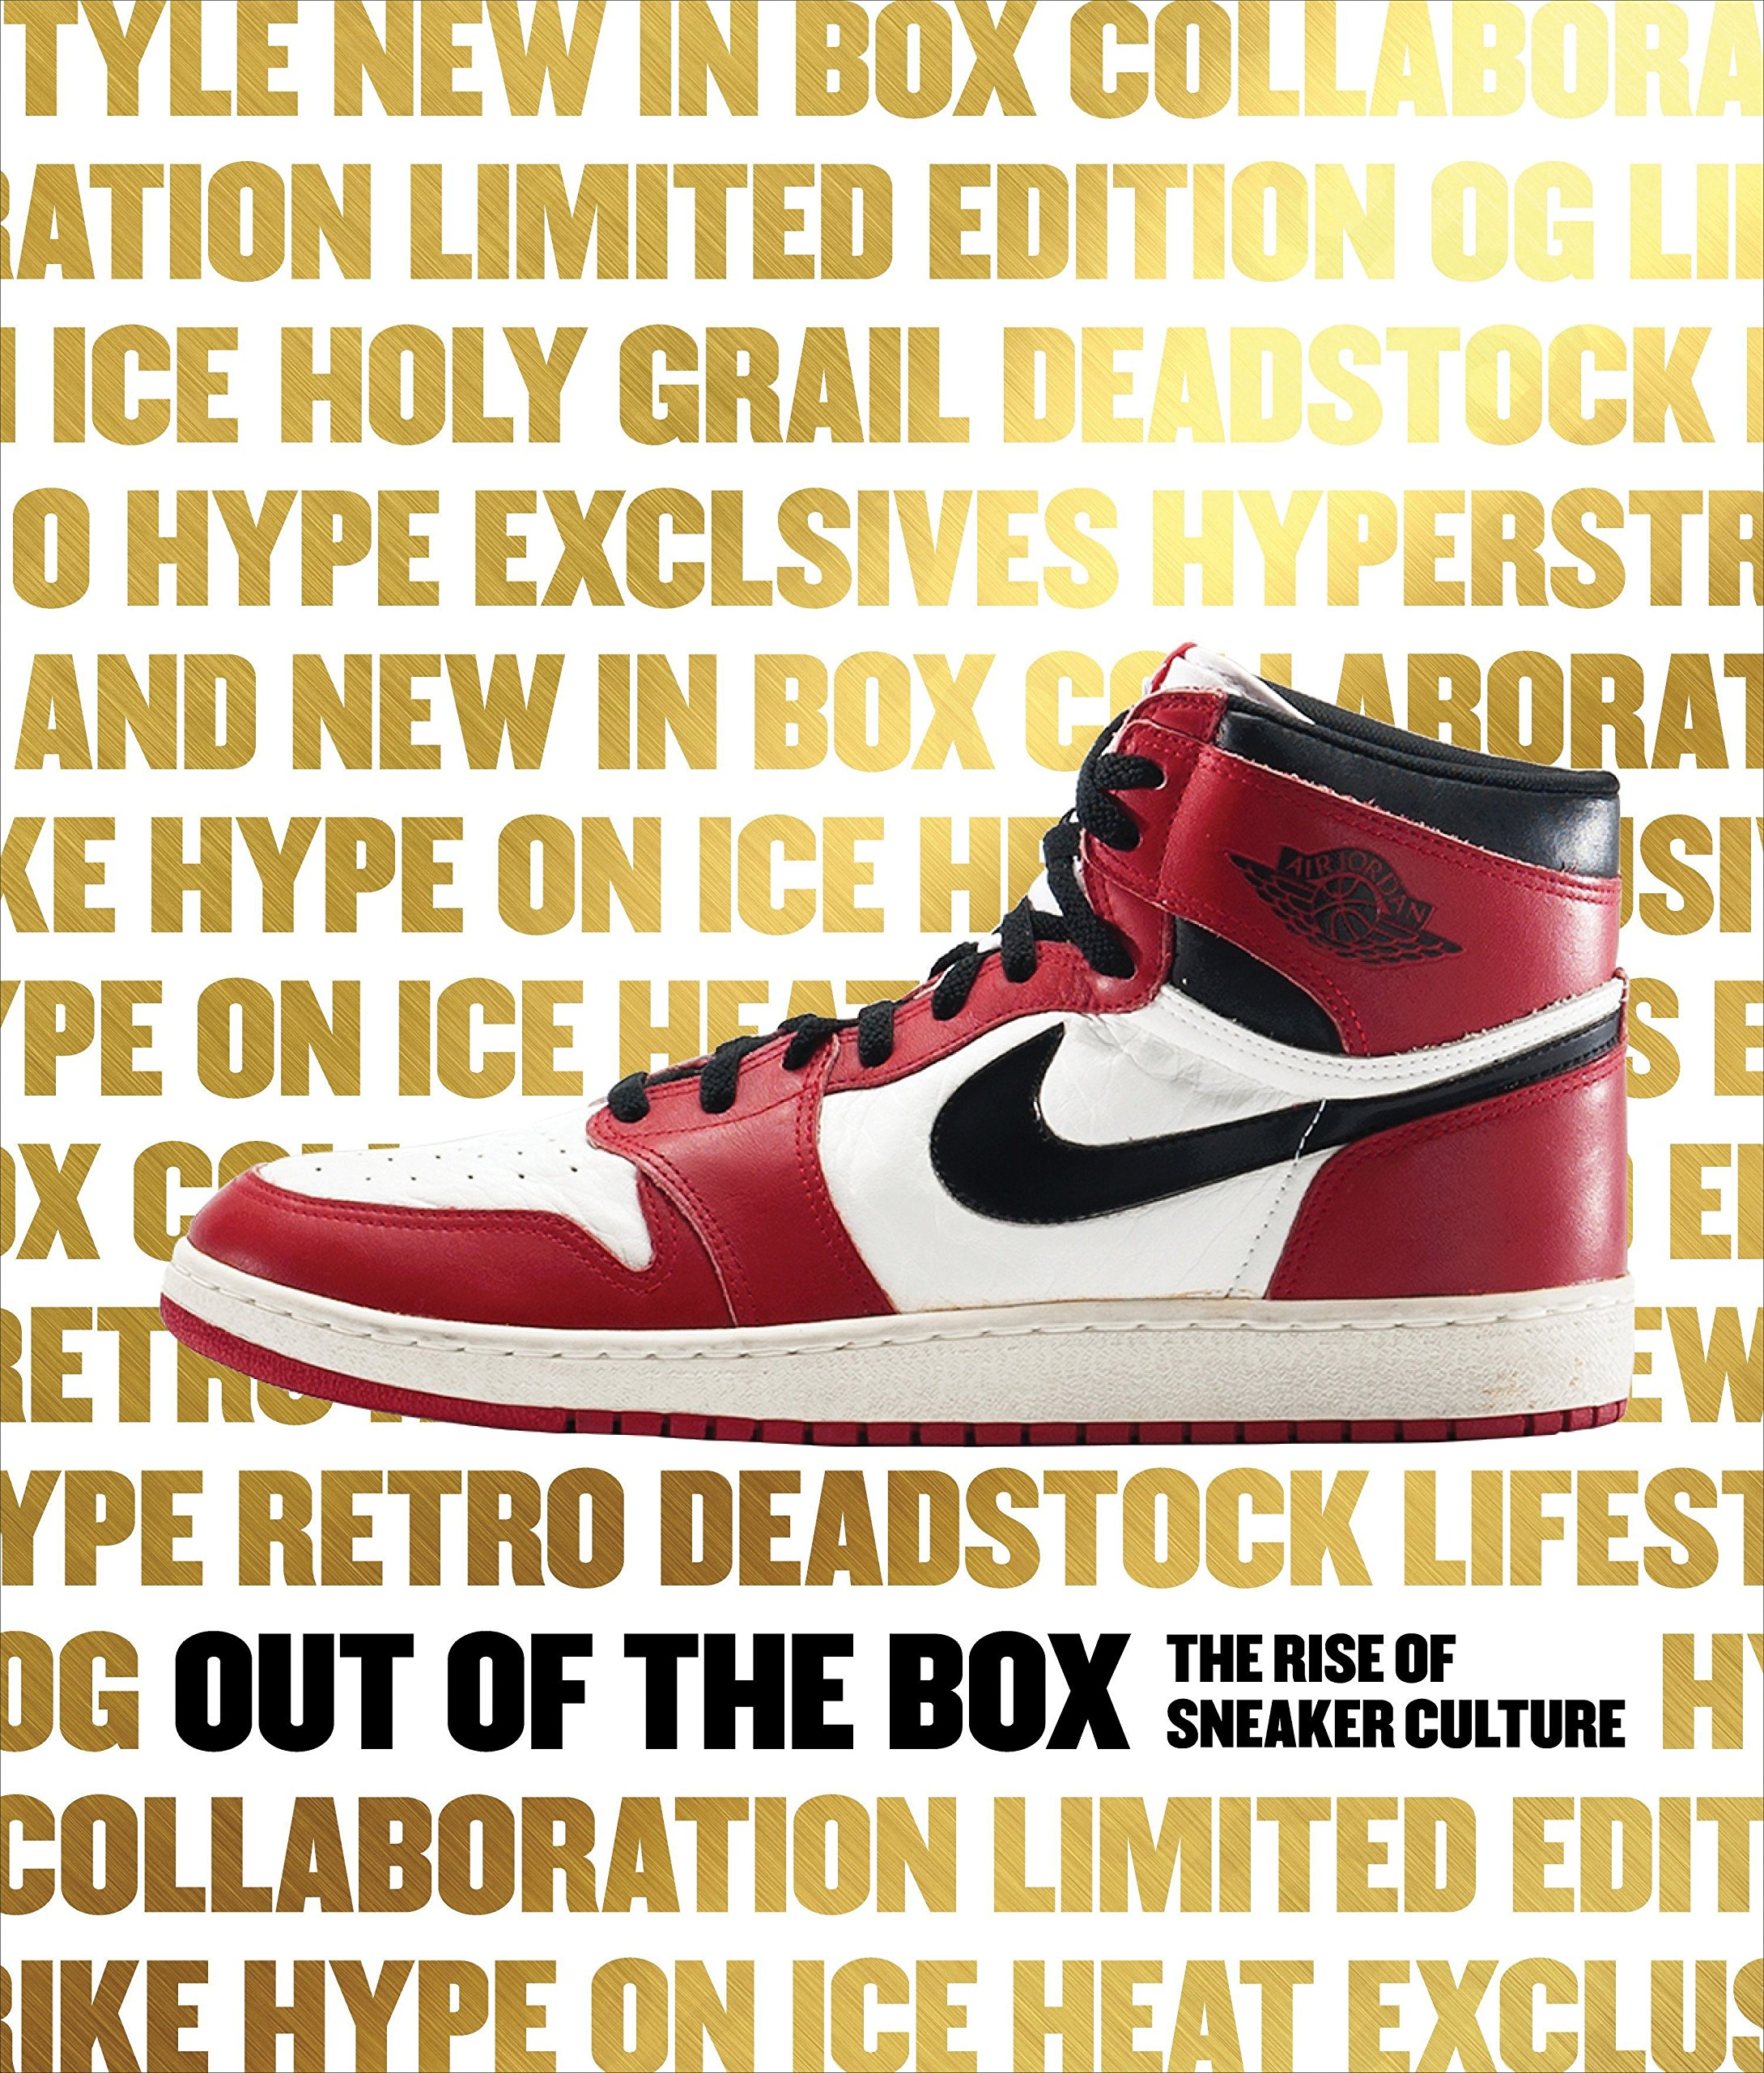 Out of the Box: The Rise of Sneaker Culture: Amazon.de: Elizabeth ...